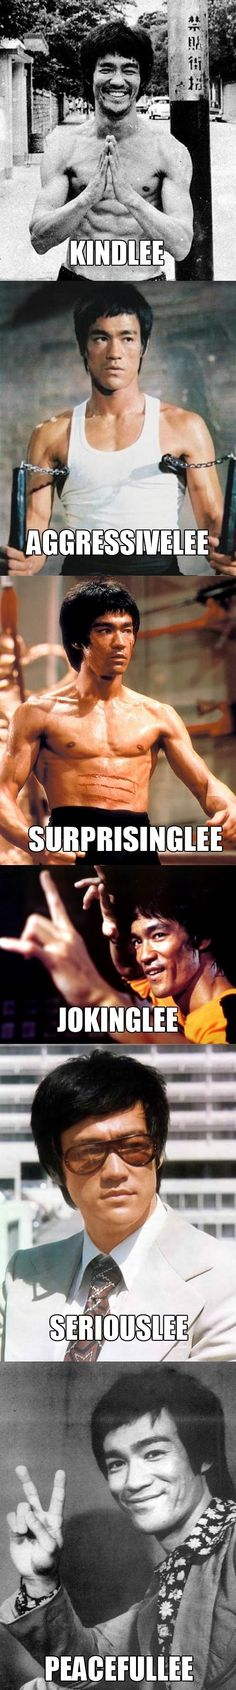 Compositelee  - funny pictures #funnypictures